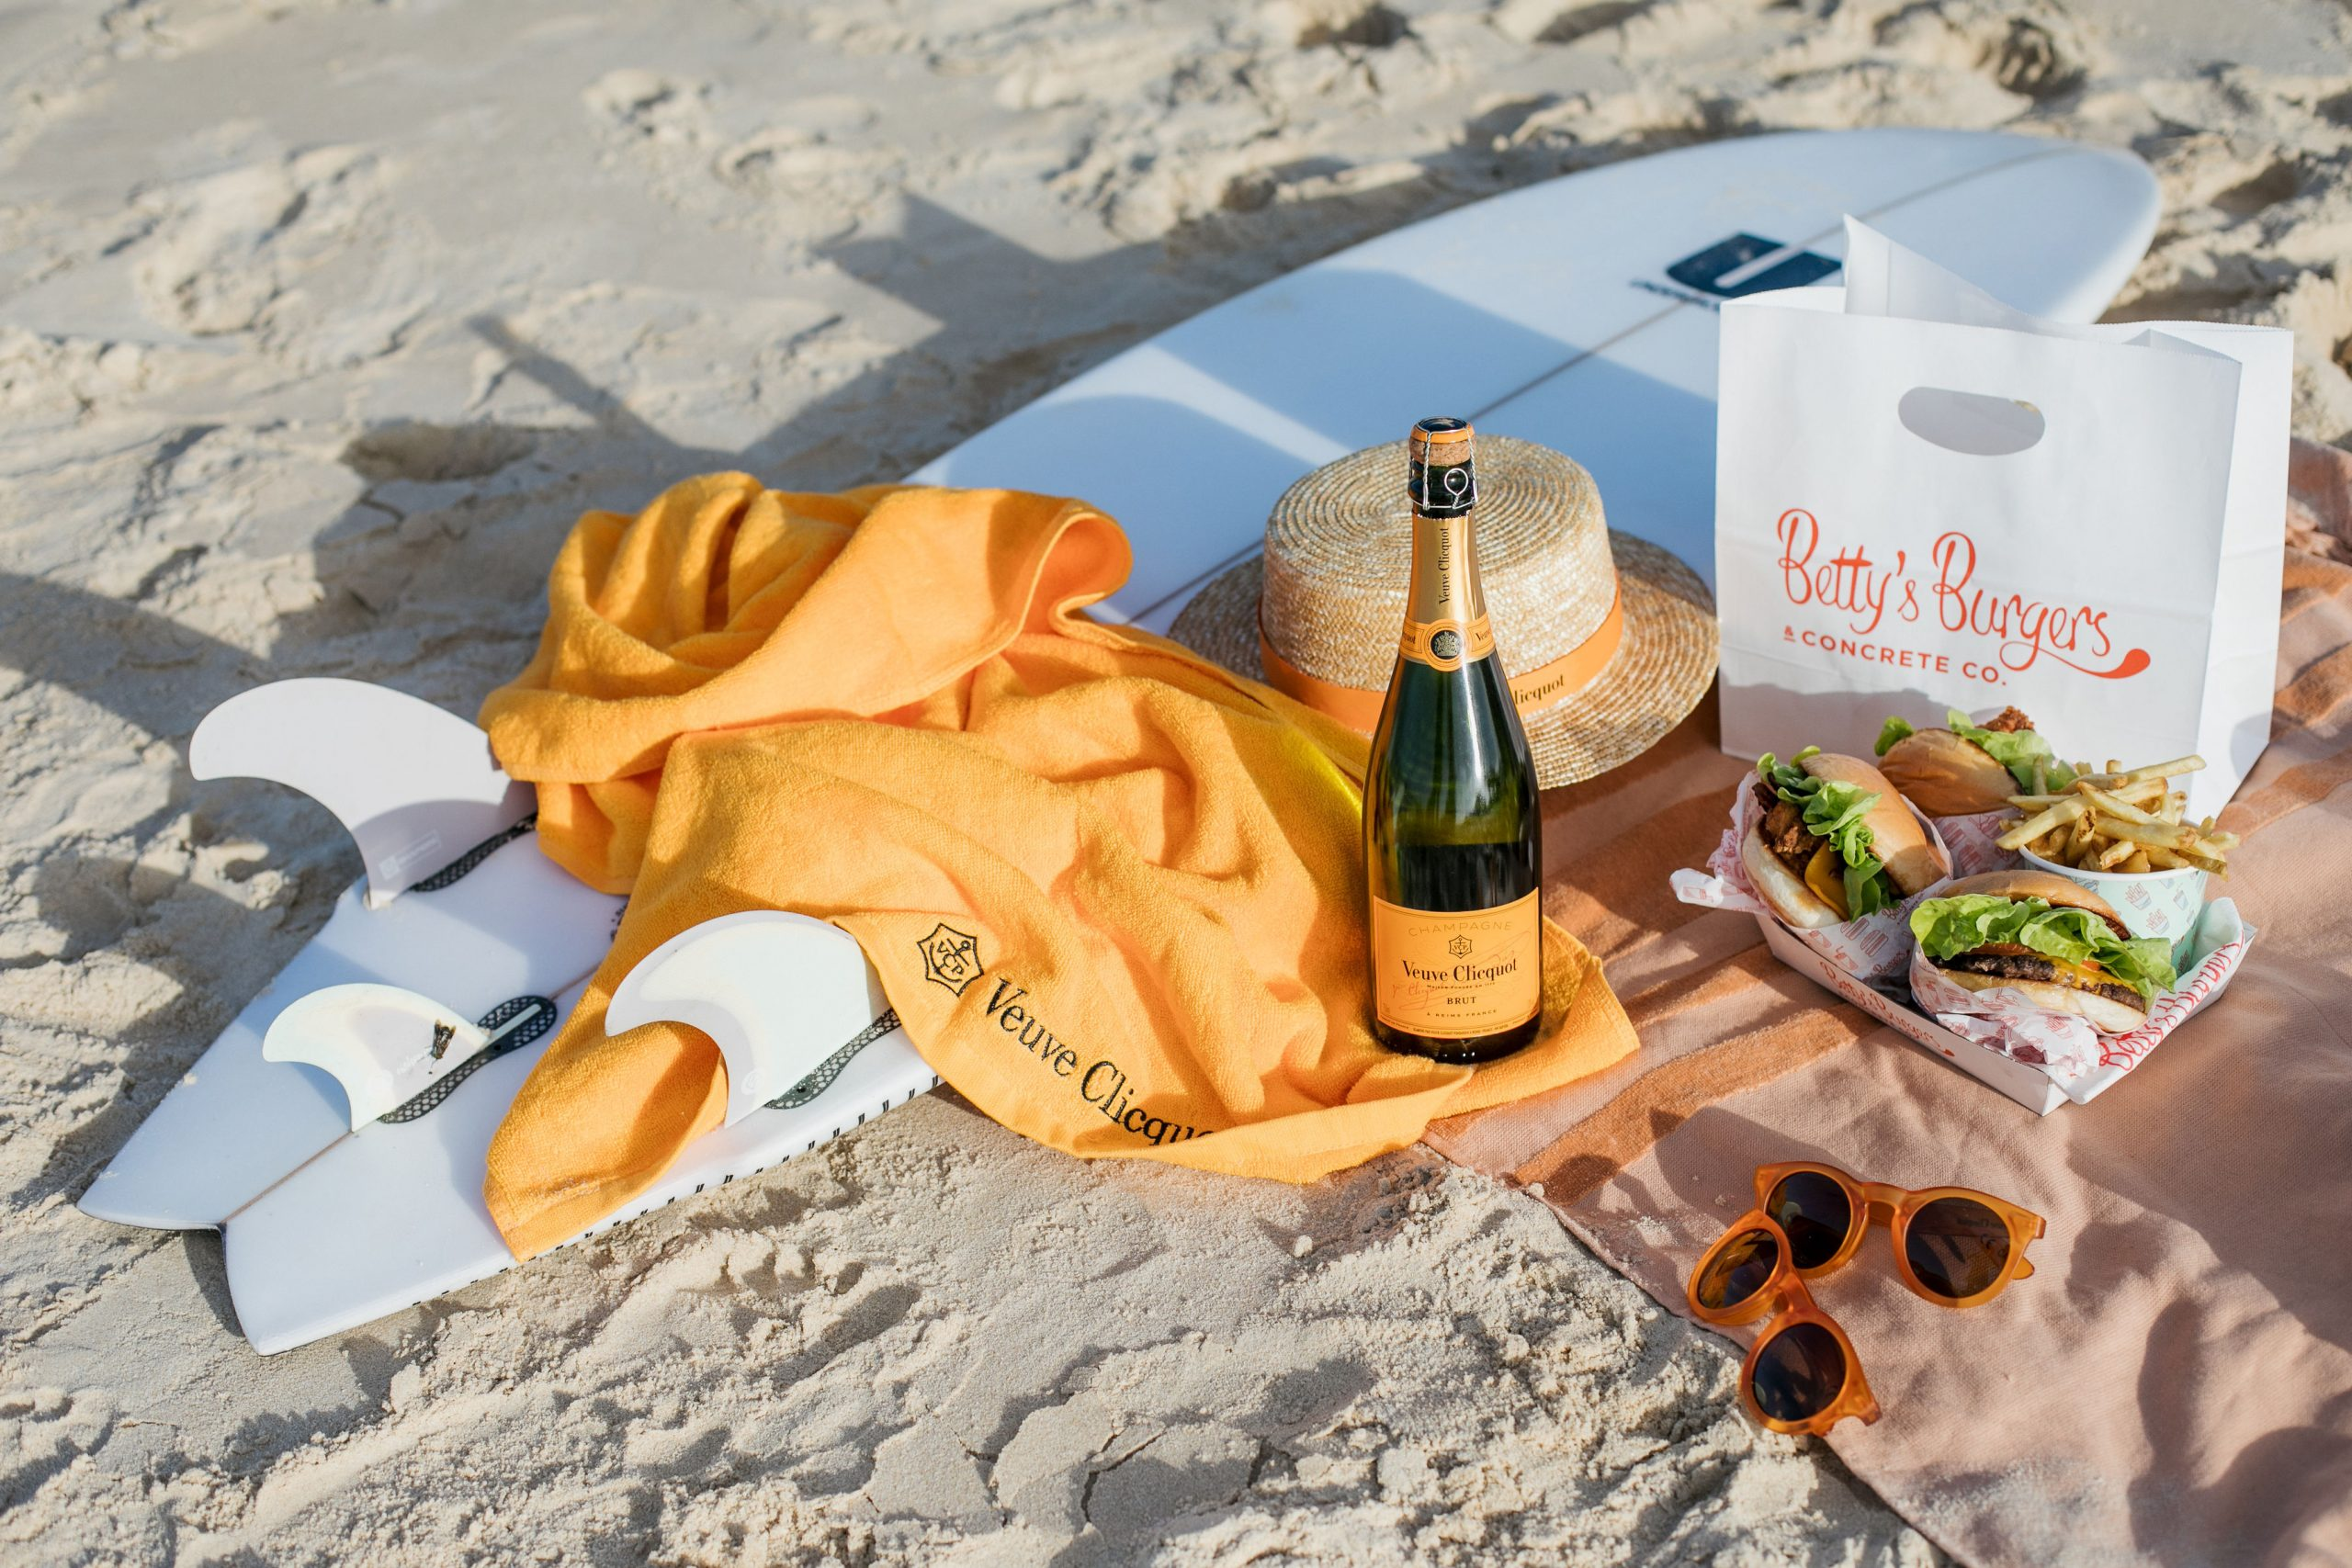 Suns out, buns out: Get ready to flip over this luxe burger hamper